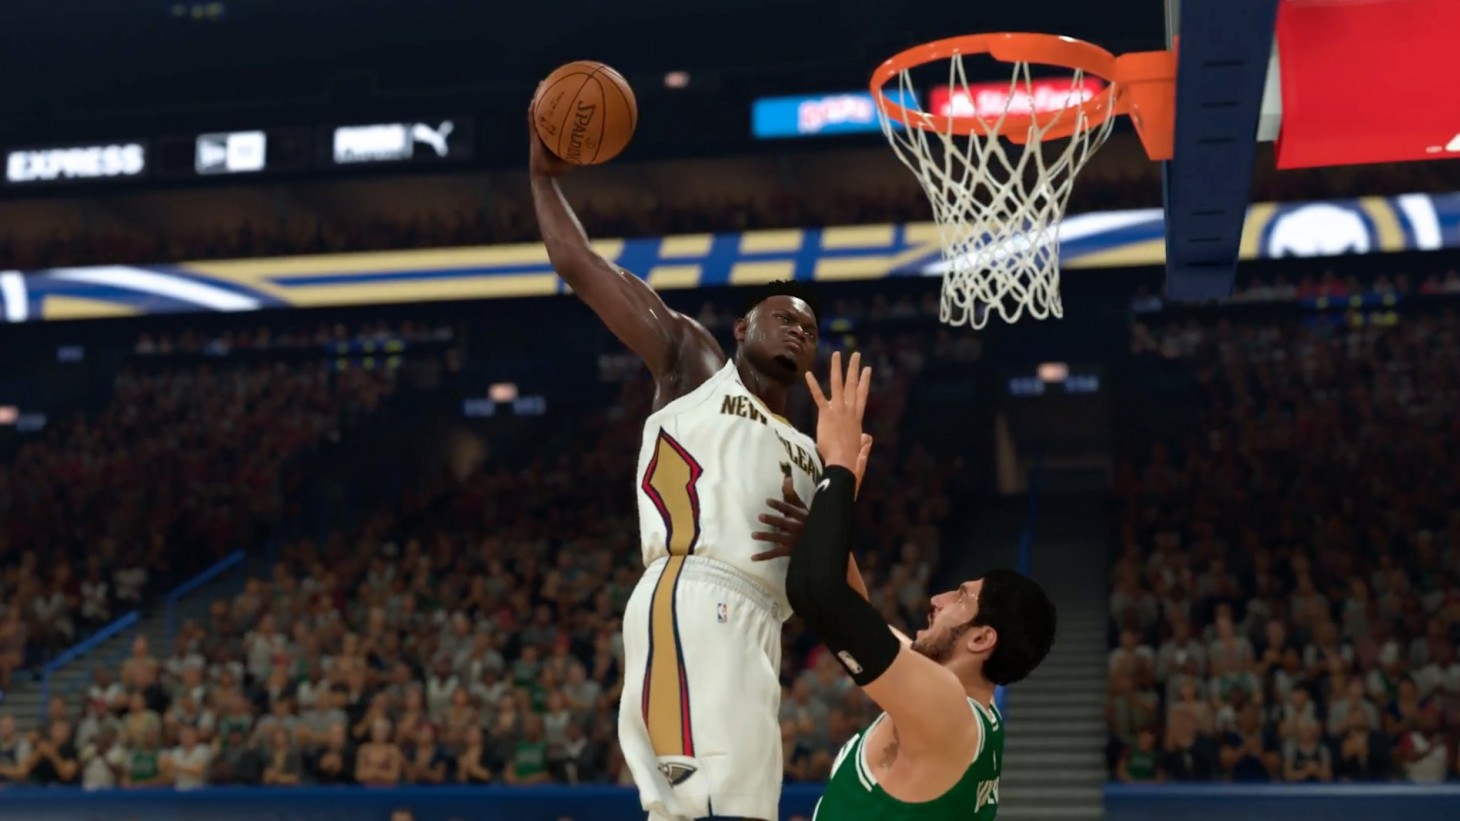 Top Draft Pick Zion Williamson Named NBA 2K Spokesperson